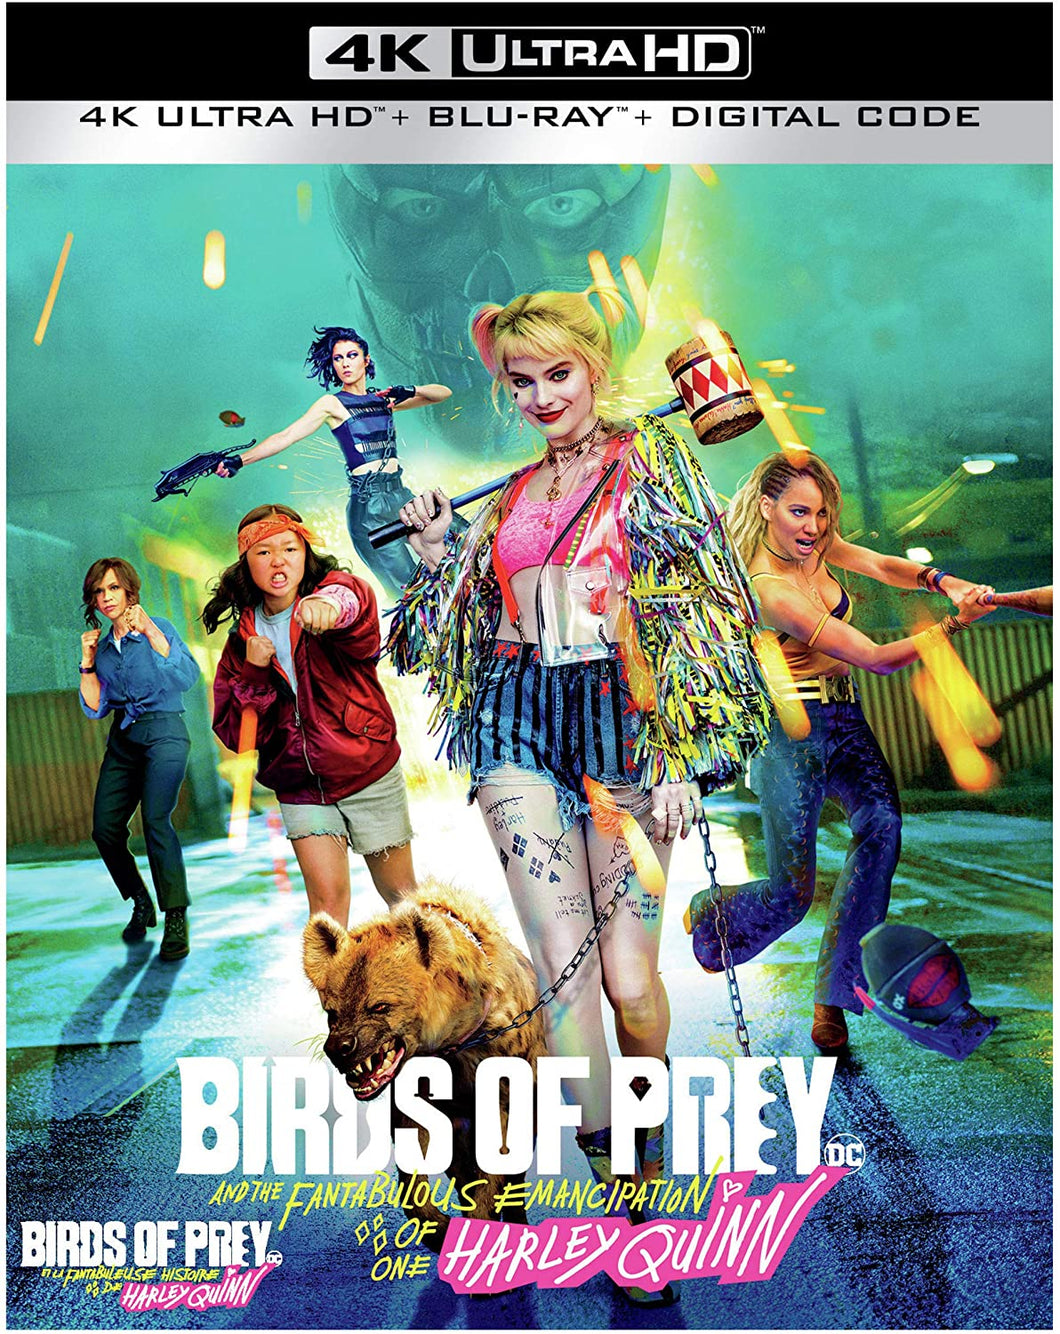 BIRDS OF PREY (AND THE FANTABULOUS EMANCIPATION OF ONE HARLEY QUINN) 4K ULTRA HD + BLU-RAY + DIGITAL